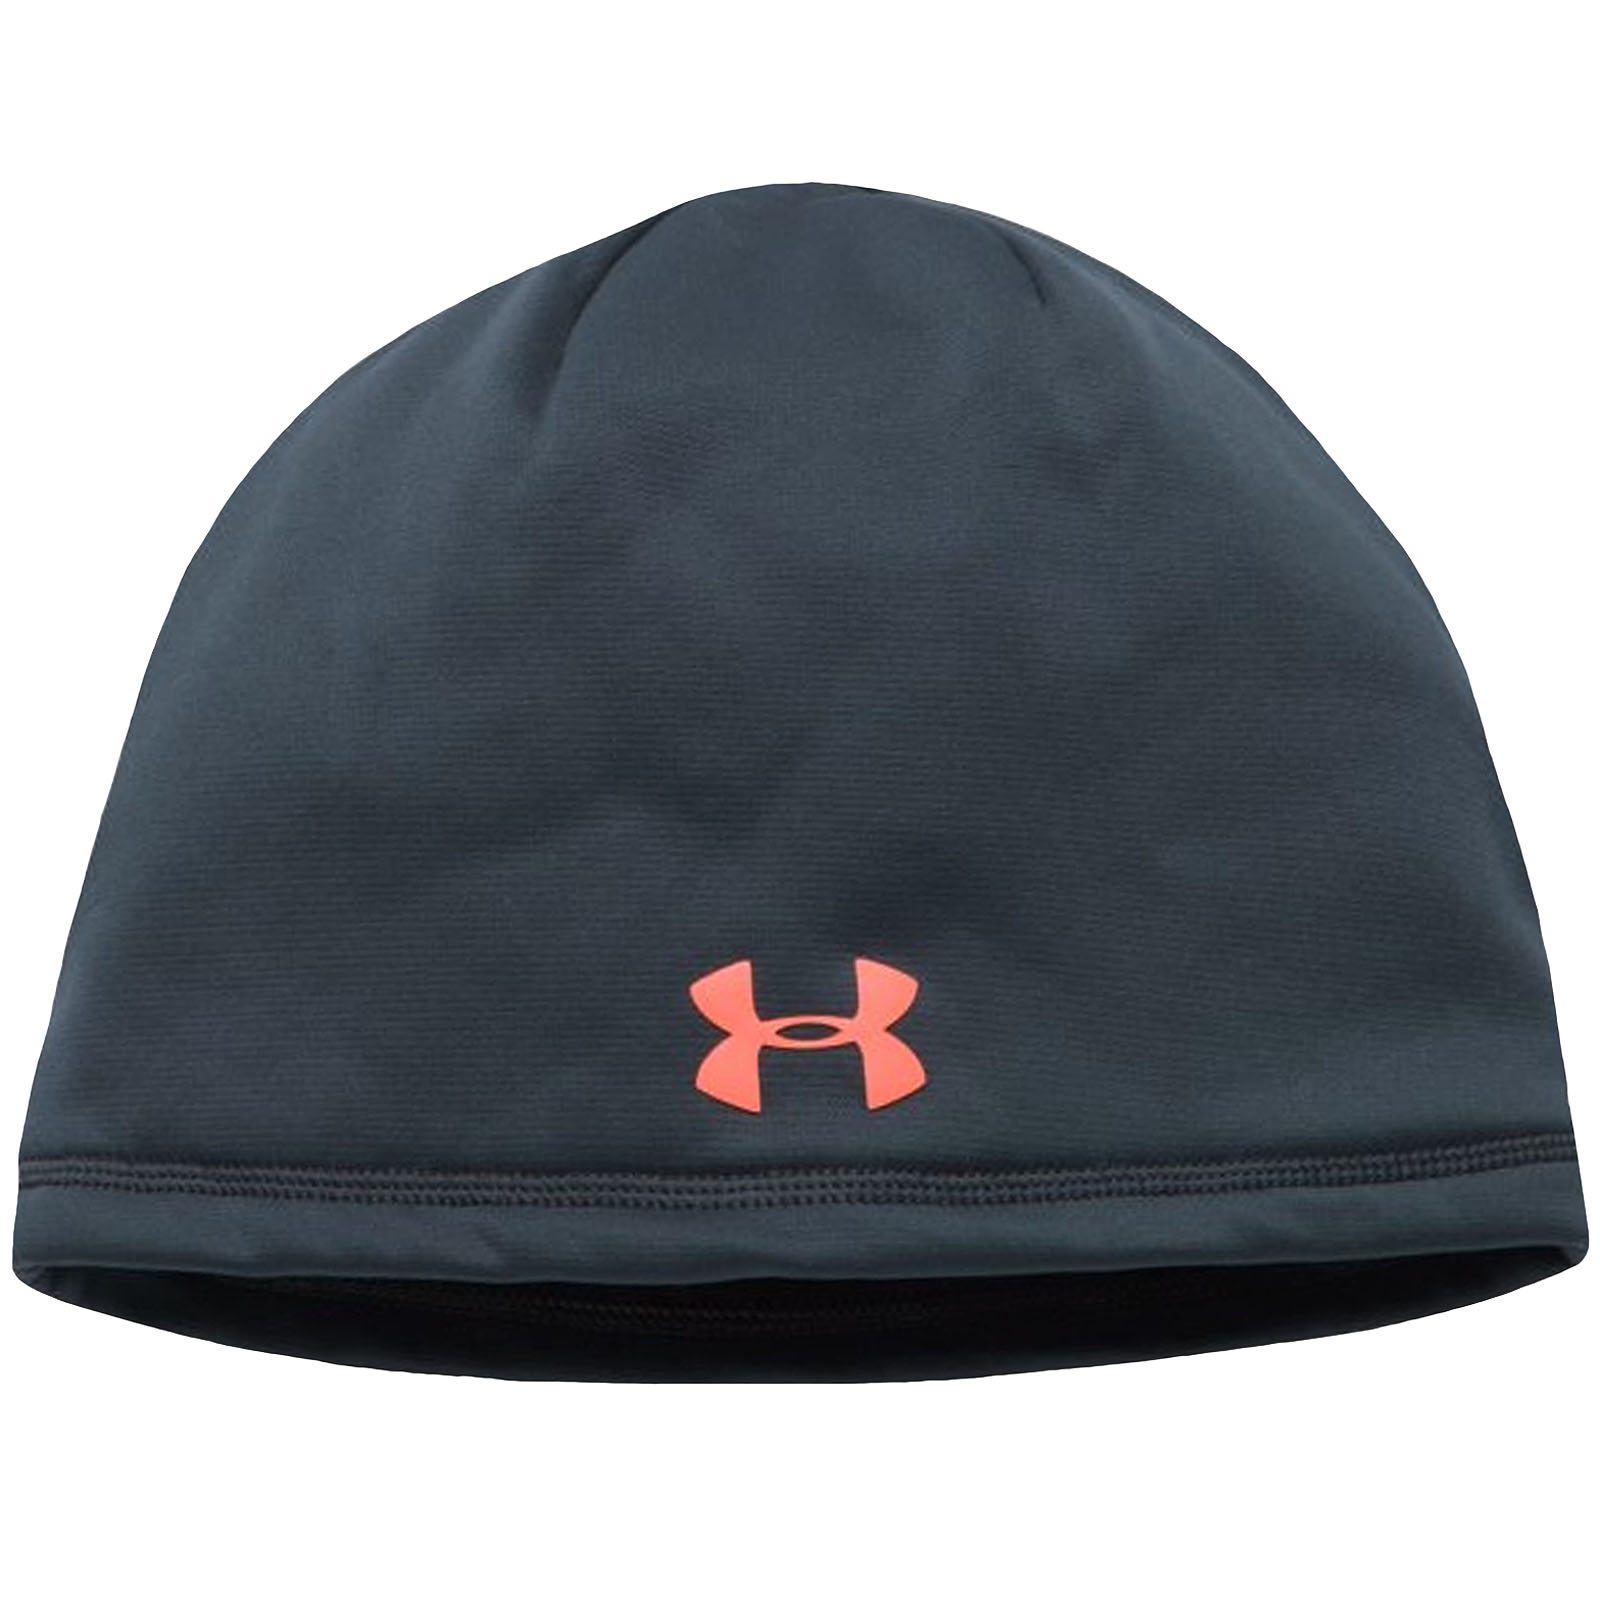 Details about Under Armour UA ColdGear Reactor Elements Running Sports  Beanie Hat - One Size 7ef87240e8c